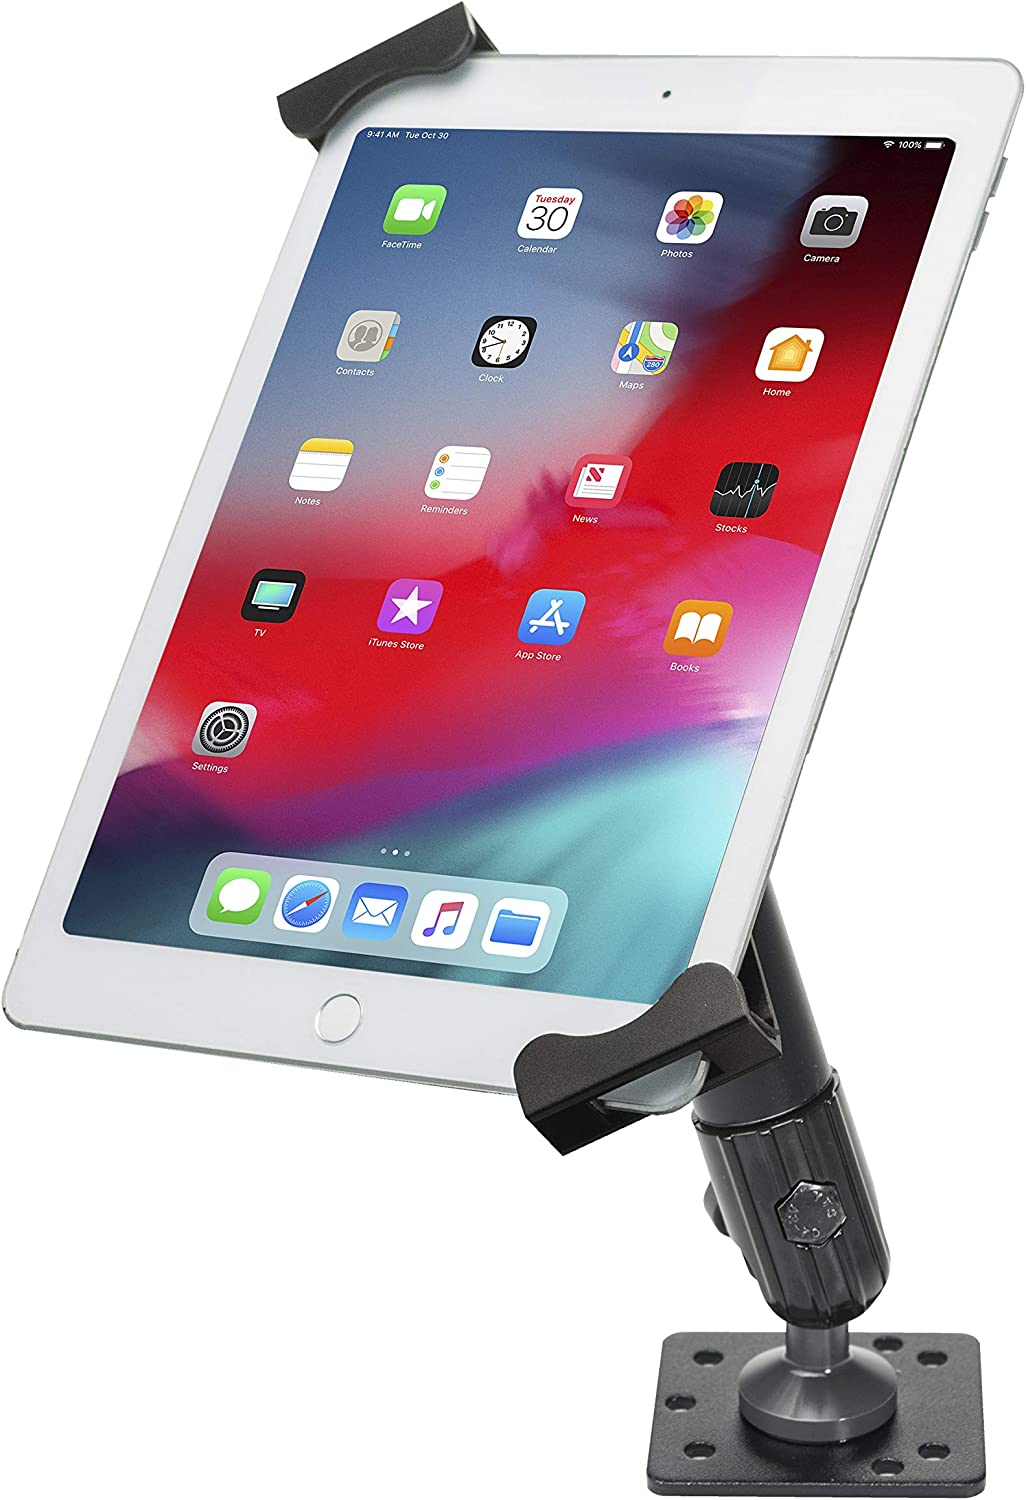 CTA Digital: Security Vehicle Dashboard Mount for 7-14 Inch Tablets, Including iPad 10.2-inch (7th & 8th Generation), iPad Mini, 12.9-Inch iPad Pro, 11-Inch iPad Pro, Galaxy Tab S3 & More